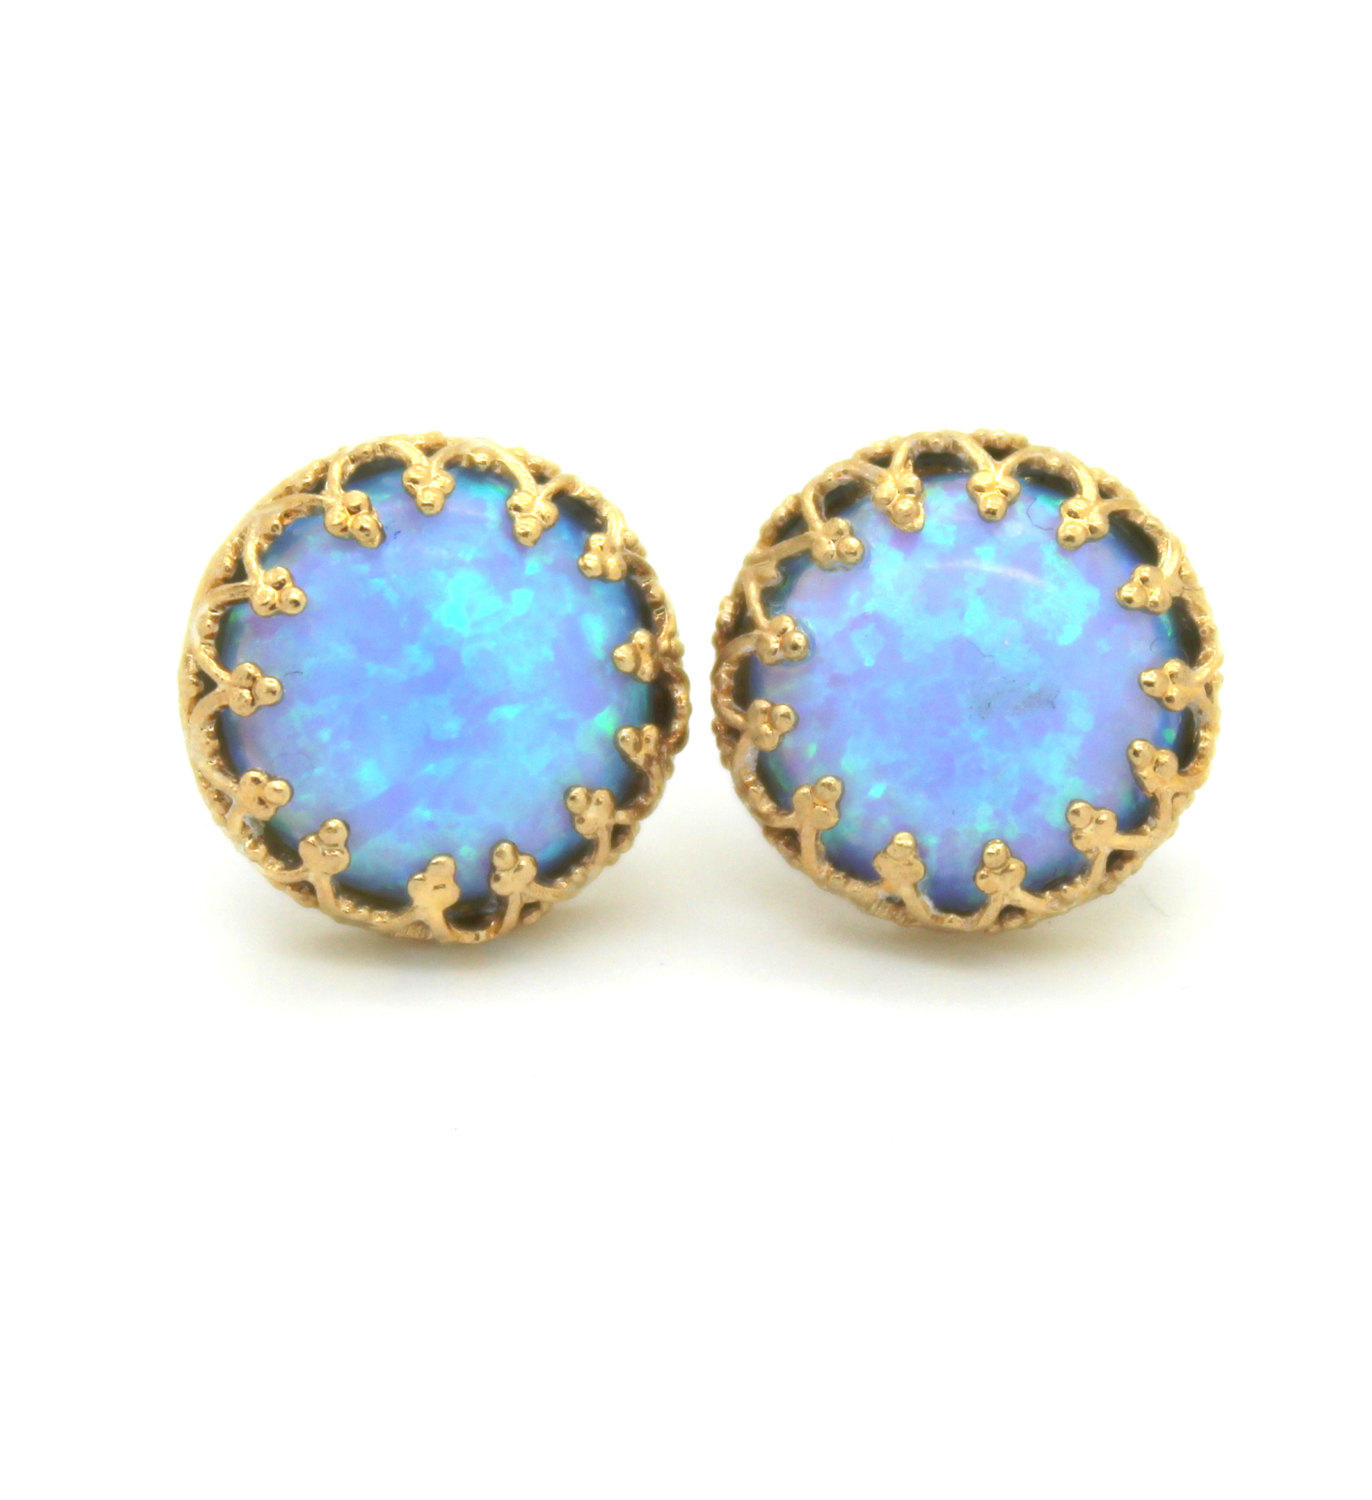 Hand Crafted 14k Yellow Gold Filled Stud Earrings With